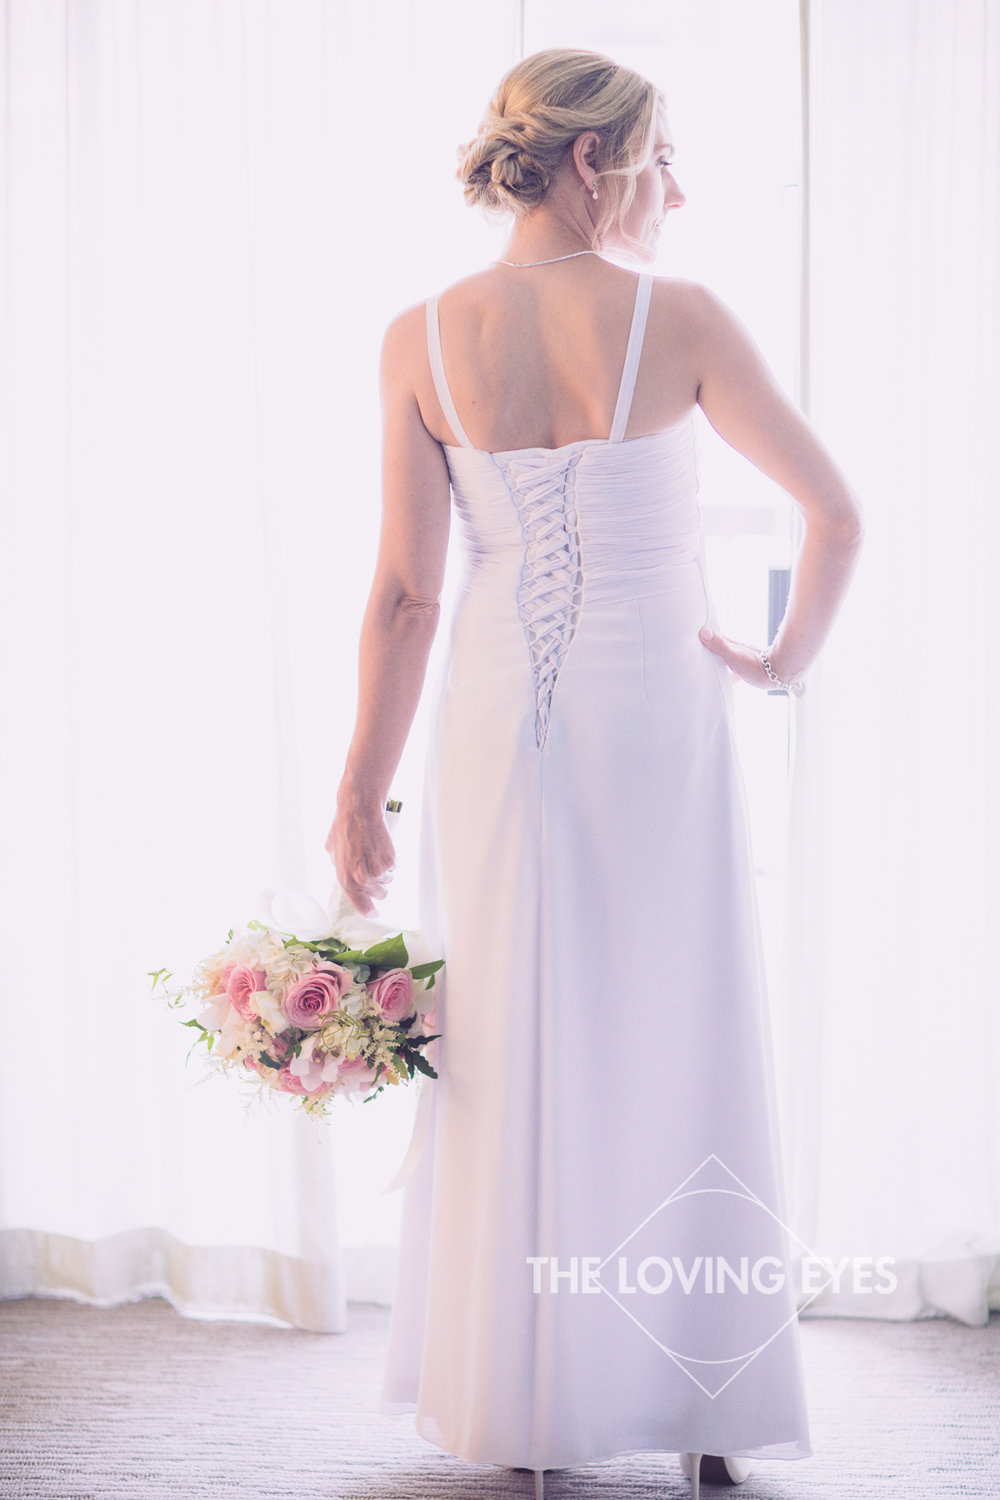 Bridal portrait with bouquet on wedding day